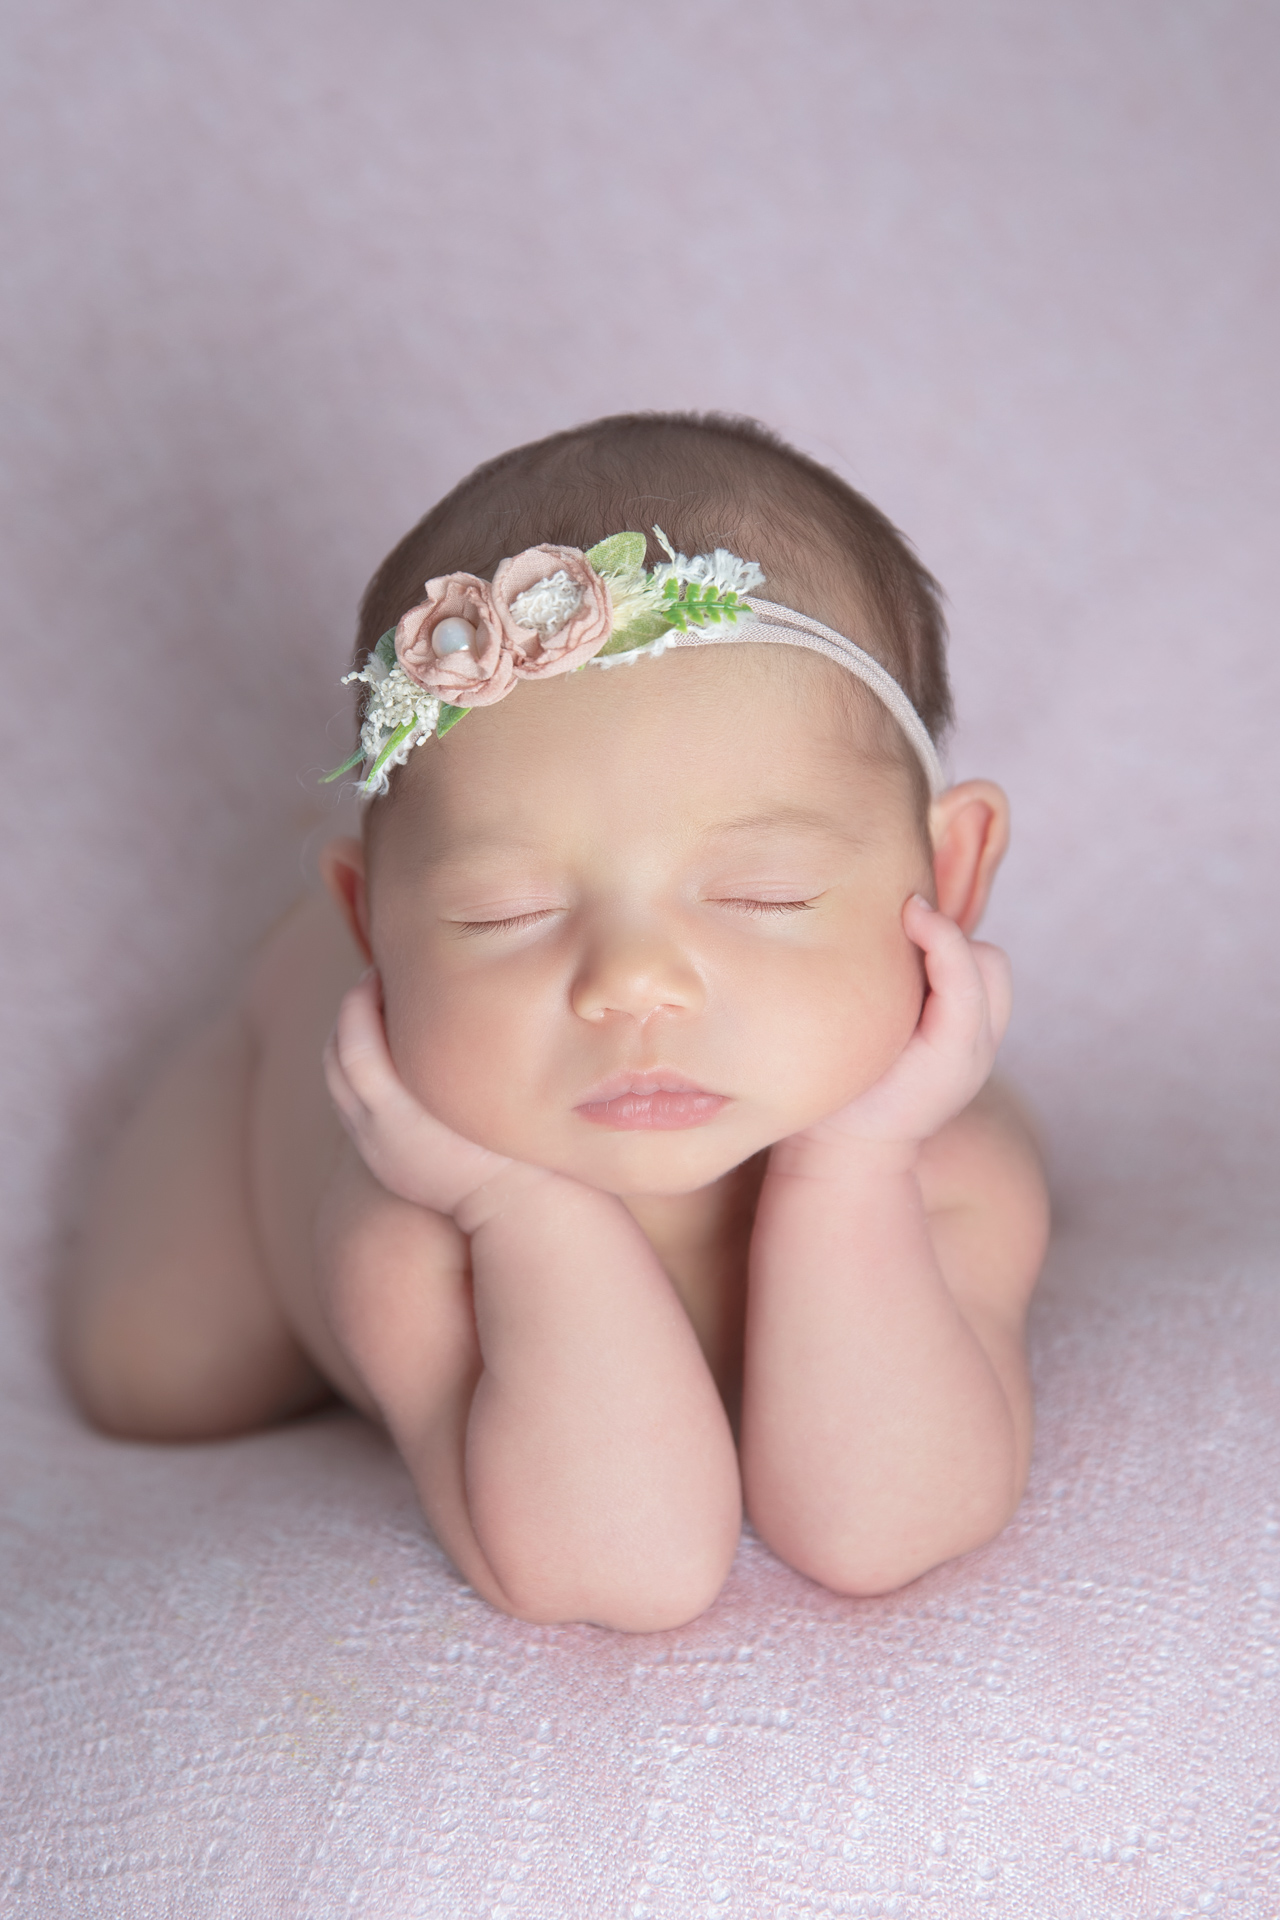 Newborn wearing pink headband rests with both hands holding her head up on pink backdrop.